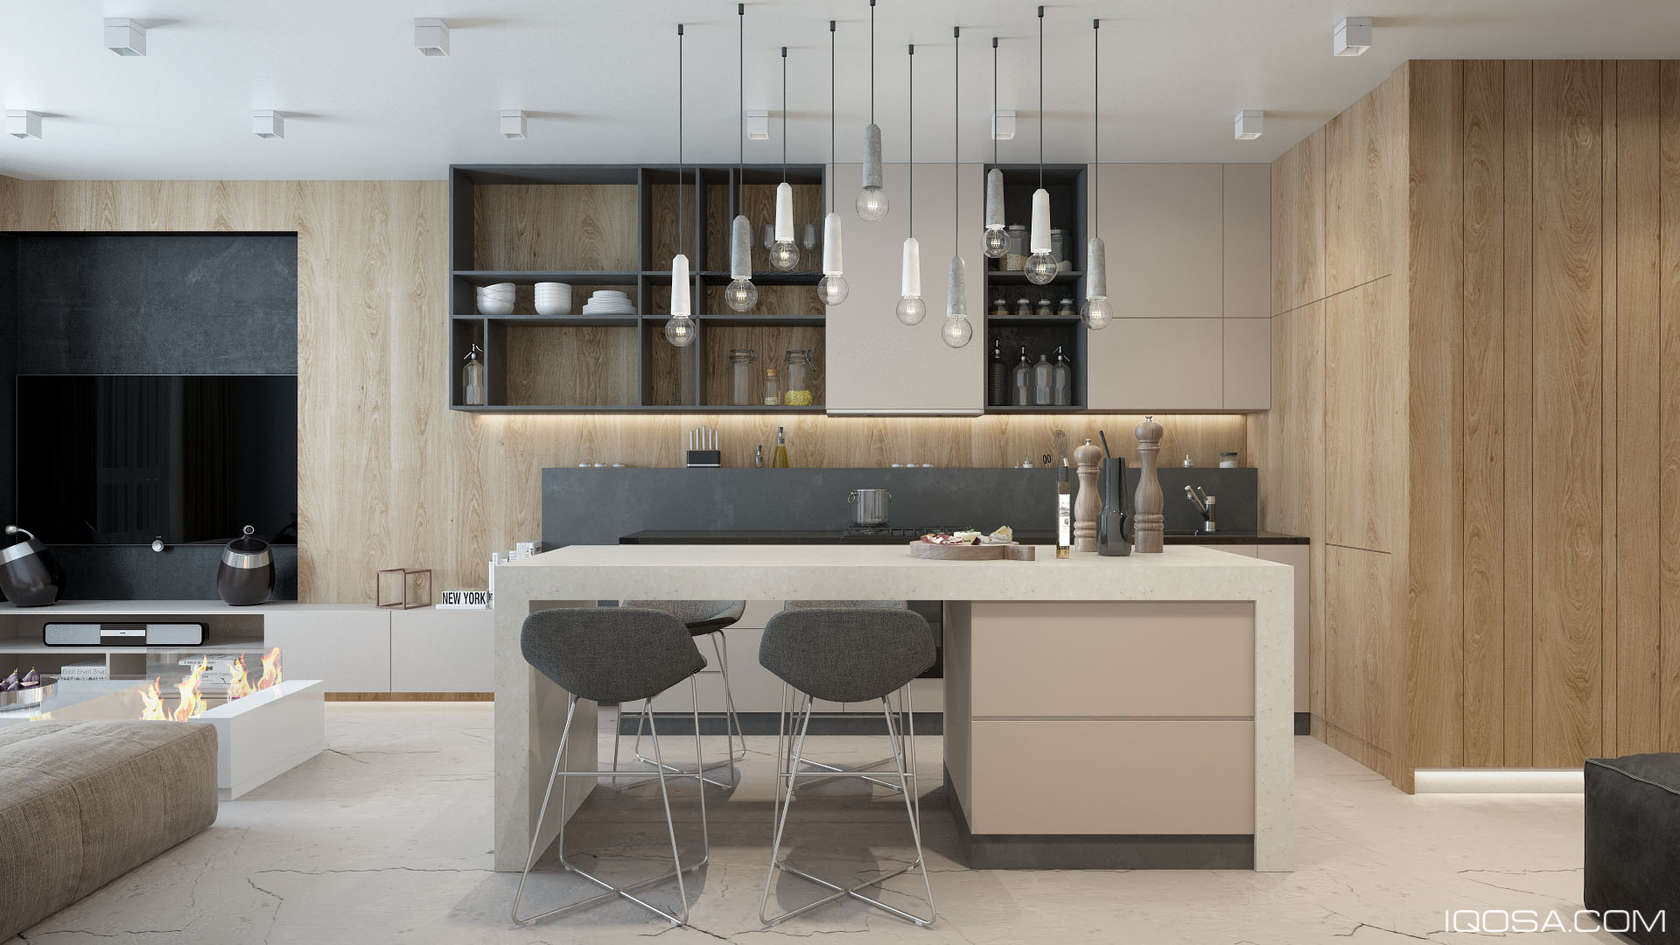 Luxury small studio apartment design combined modern and for Modern apartment kitchen design